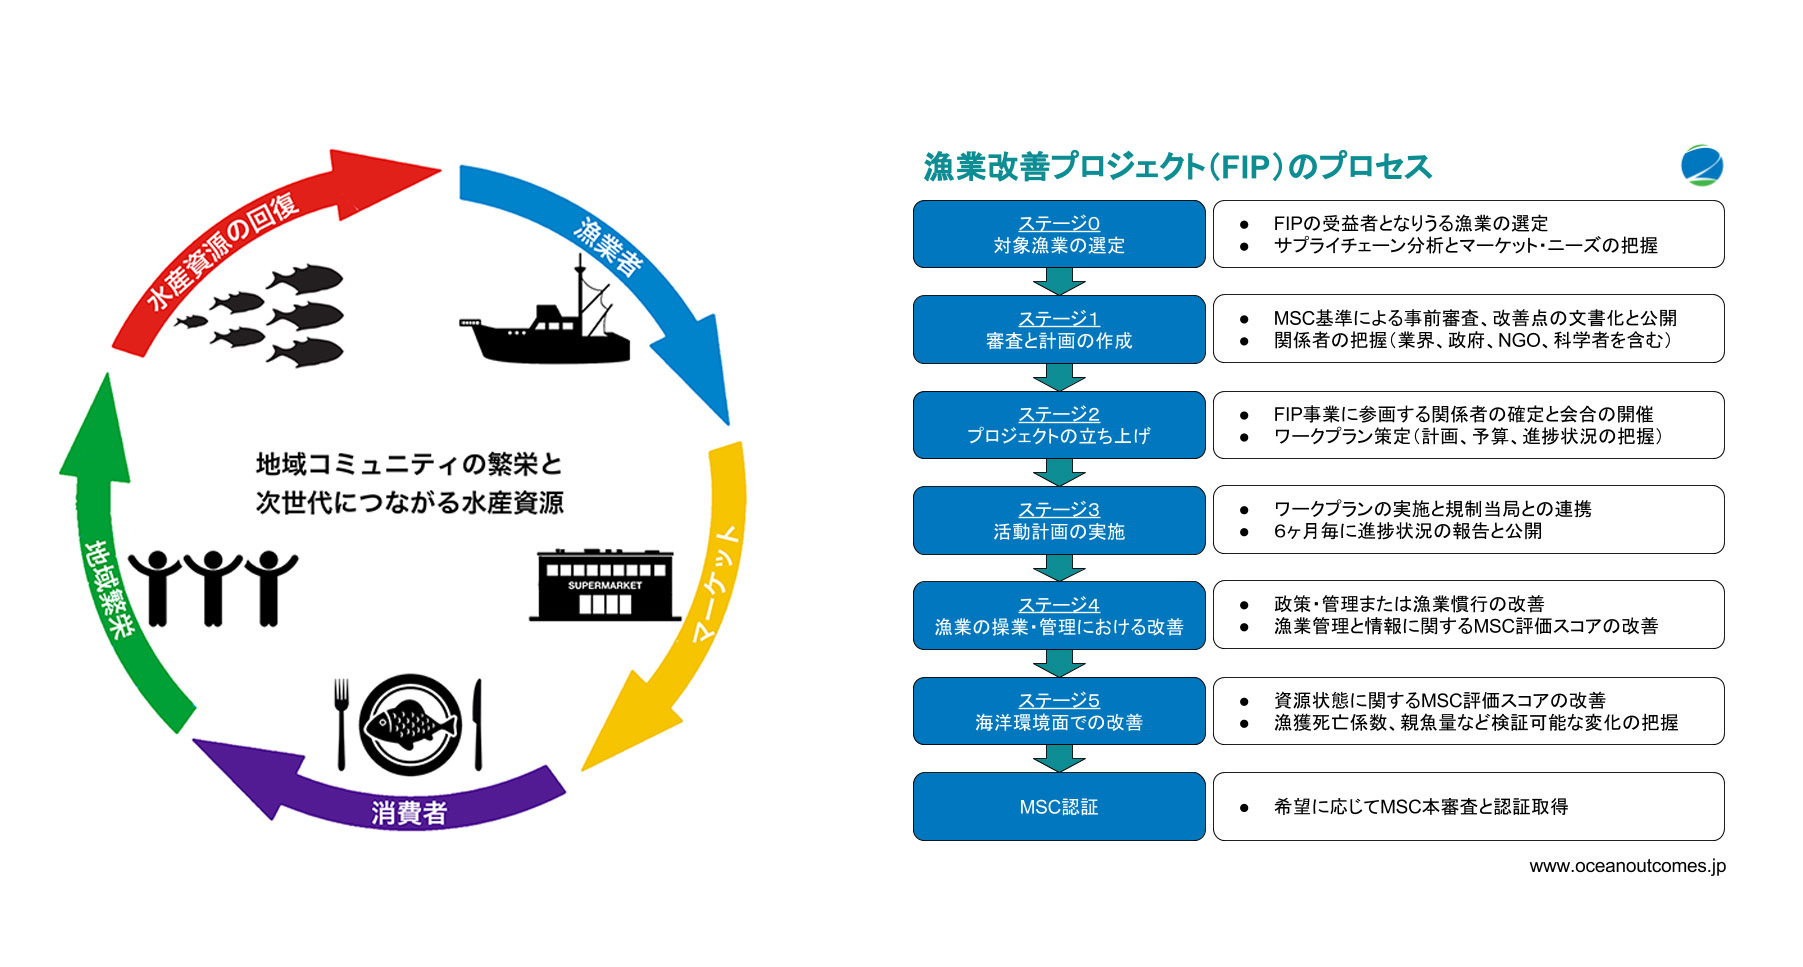 Sustainable Seafood Process Circle 漁業改善プロジェクト(FIP)のプロセス